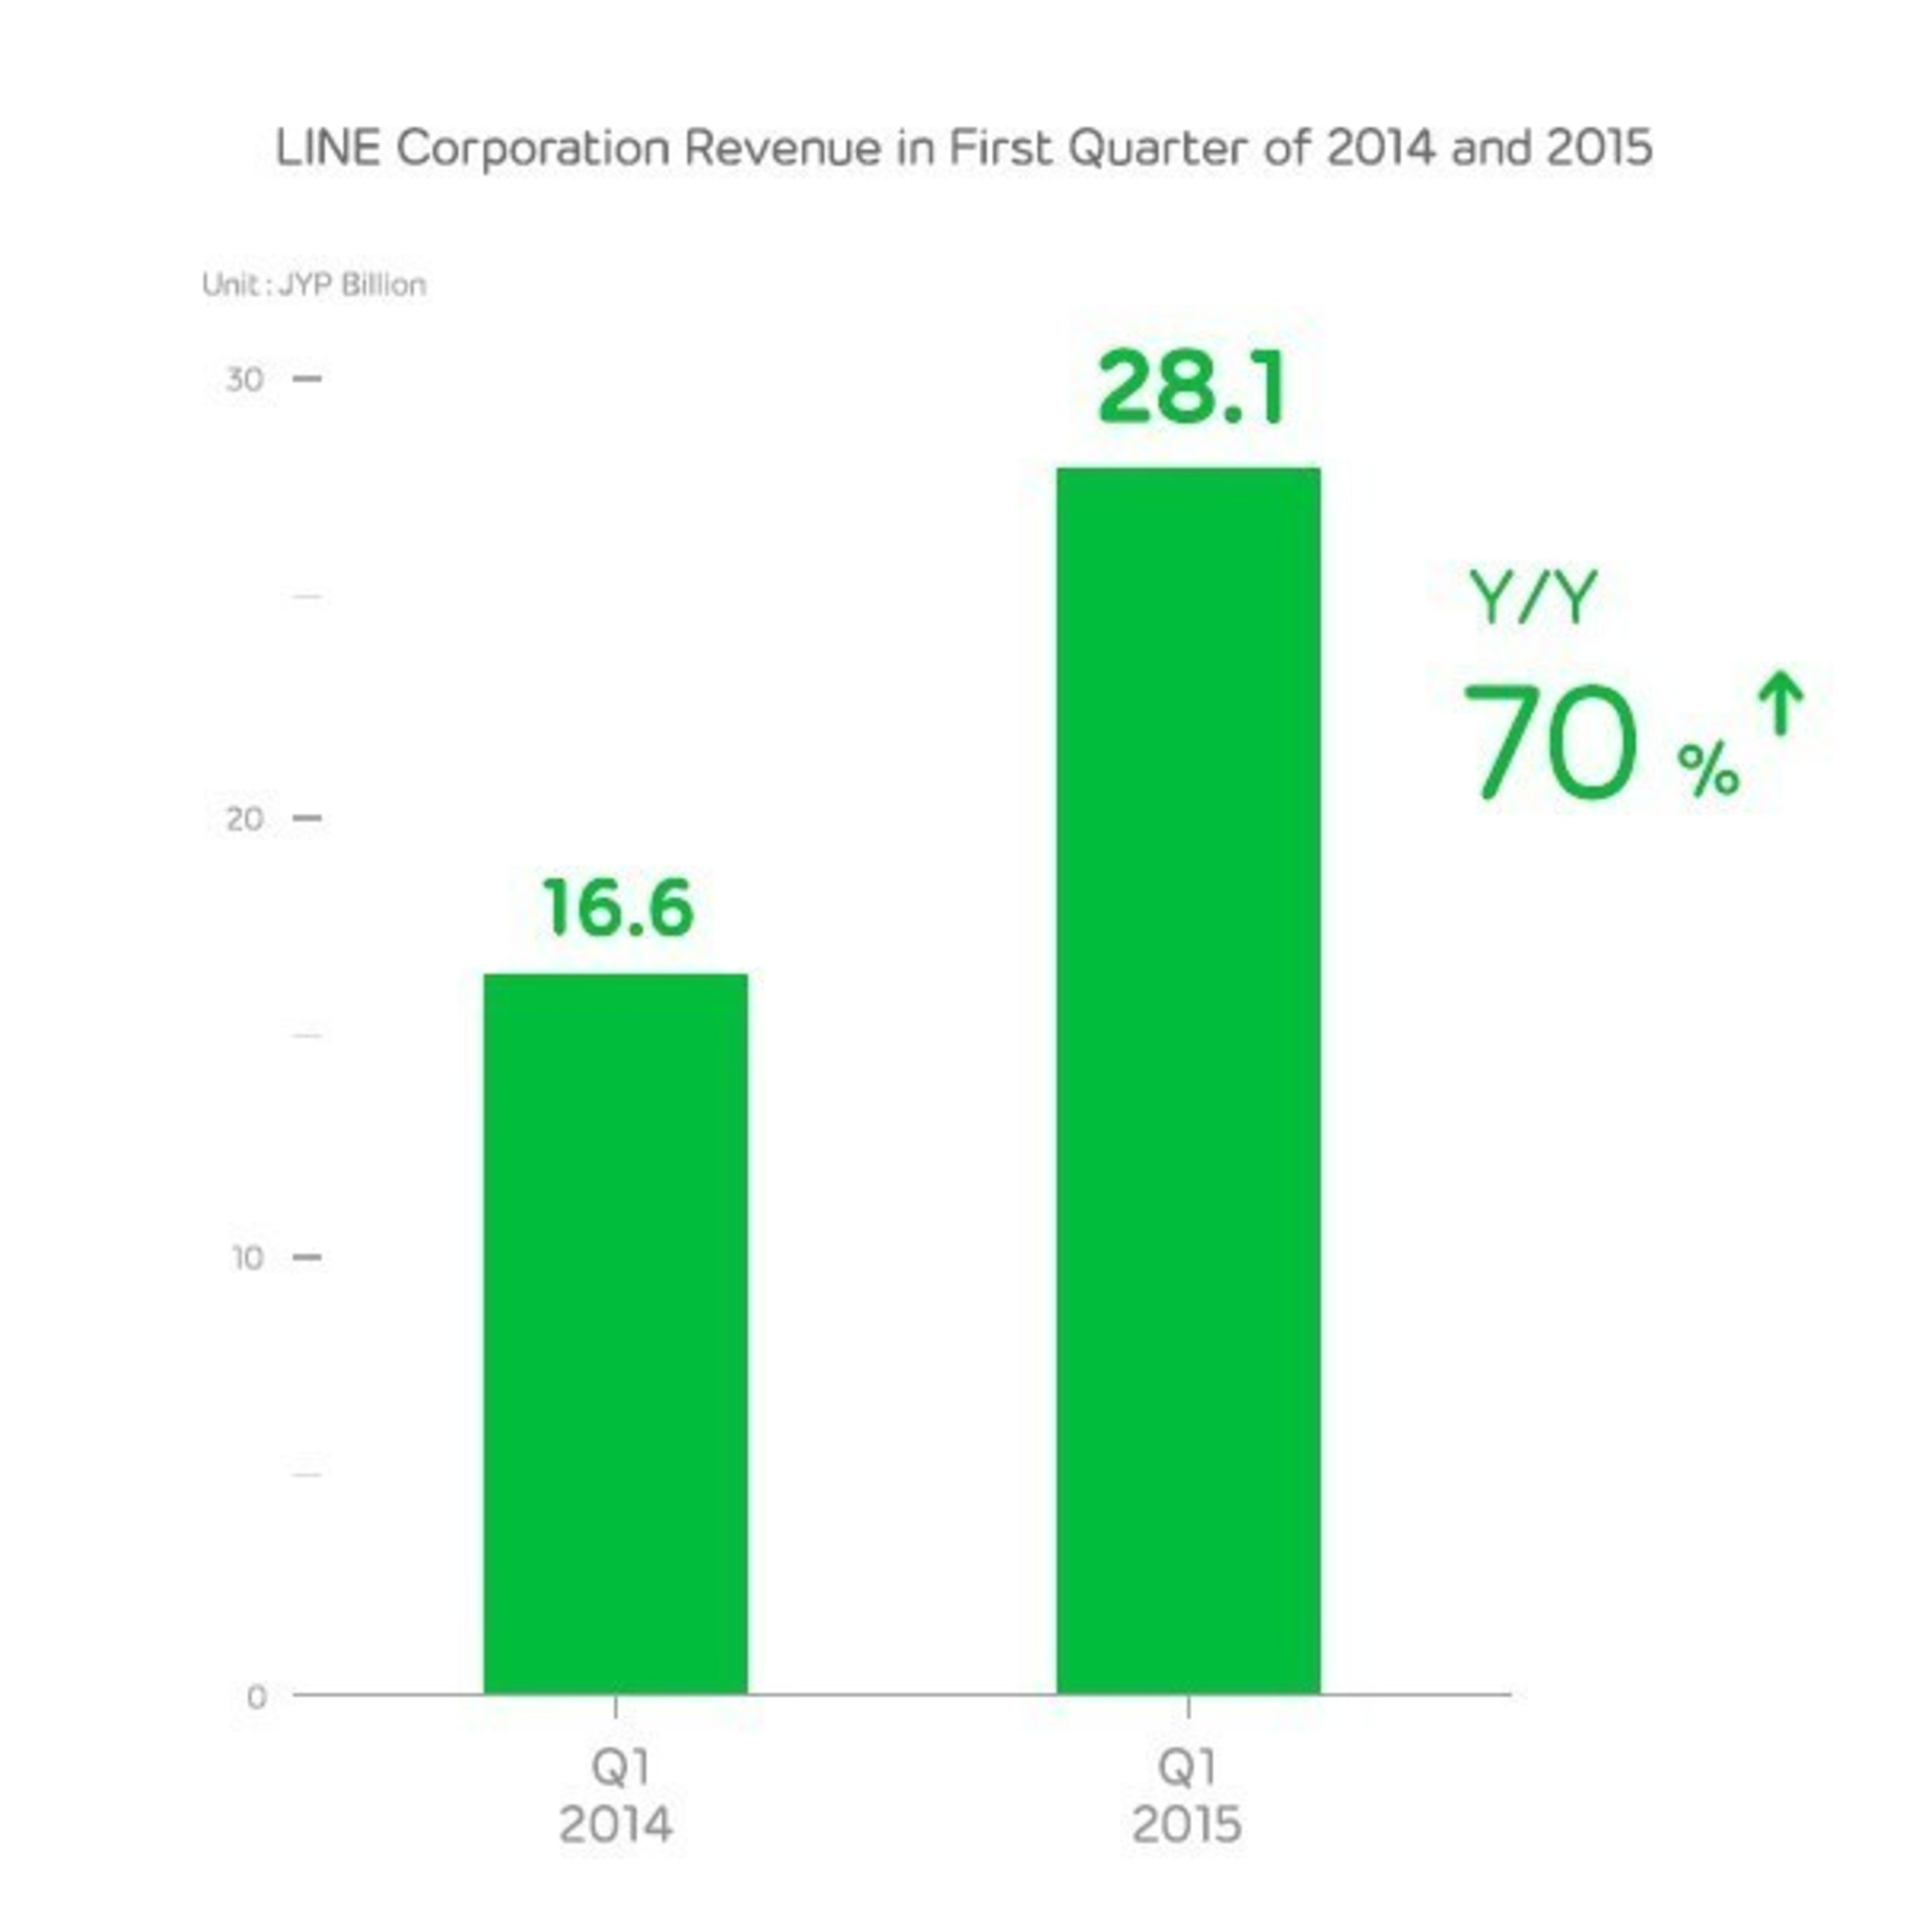 LINE Corporation Announces 2015 Q1 Earnings